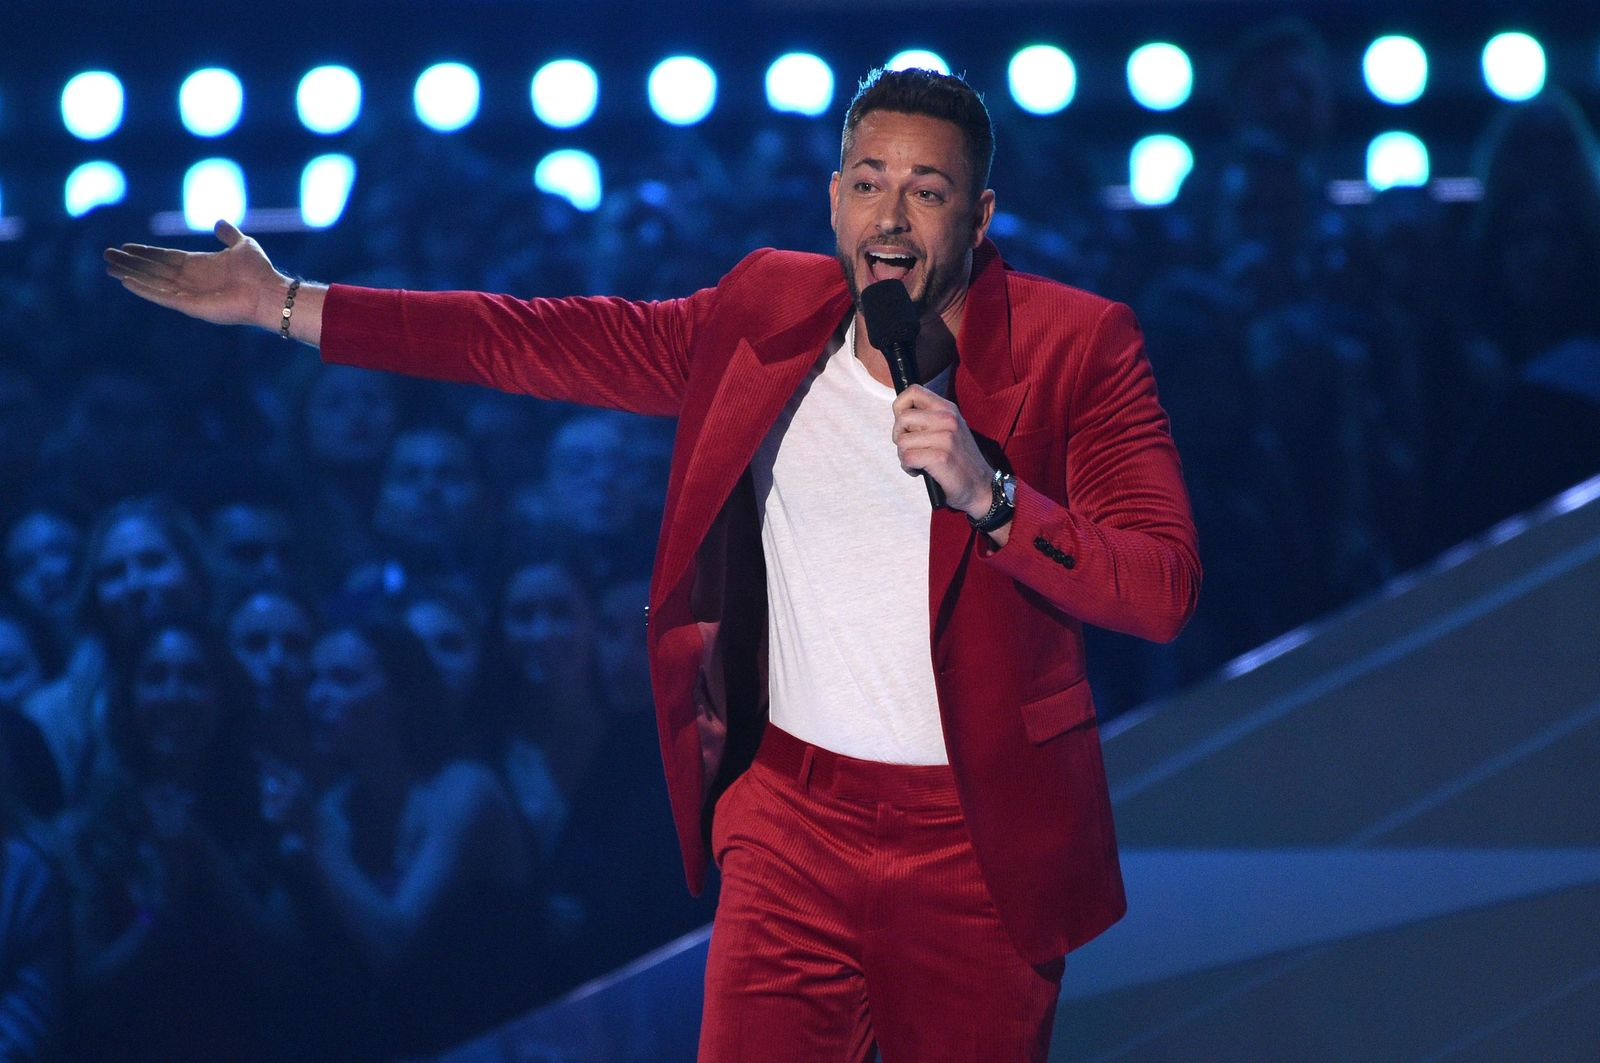 Host Zachary Levi speaks at the MTV Movie and TV Awards on Saturday, June 15, 2019, at the Barker Hangar in Santa Monica, Calif. (Photo by Chris Pizzello/Invision/AP)